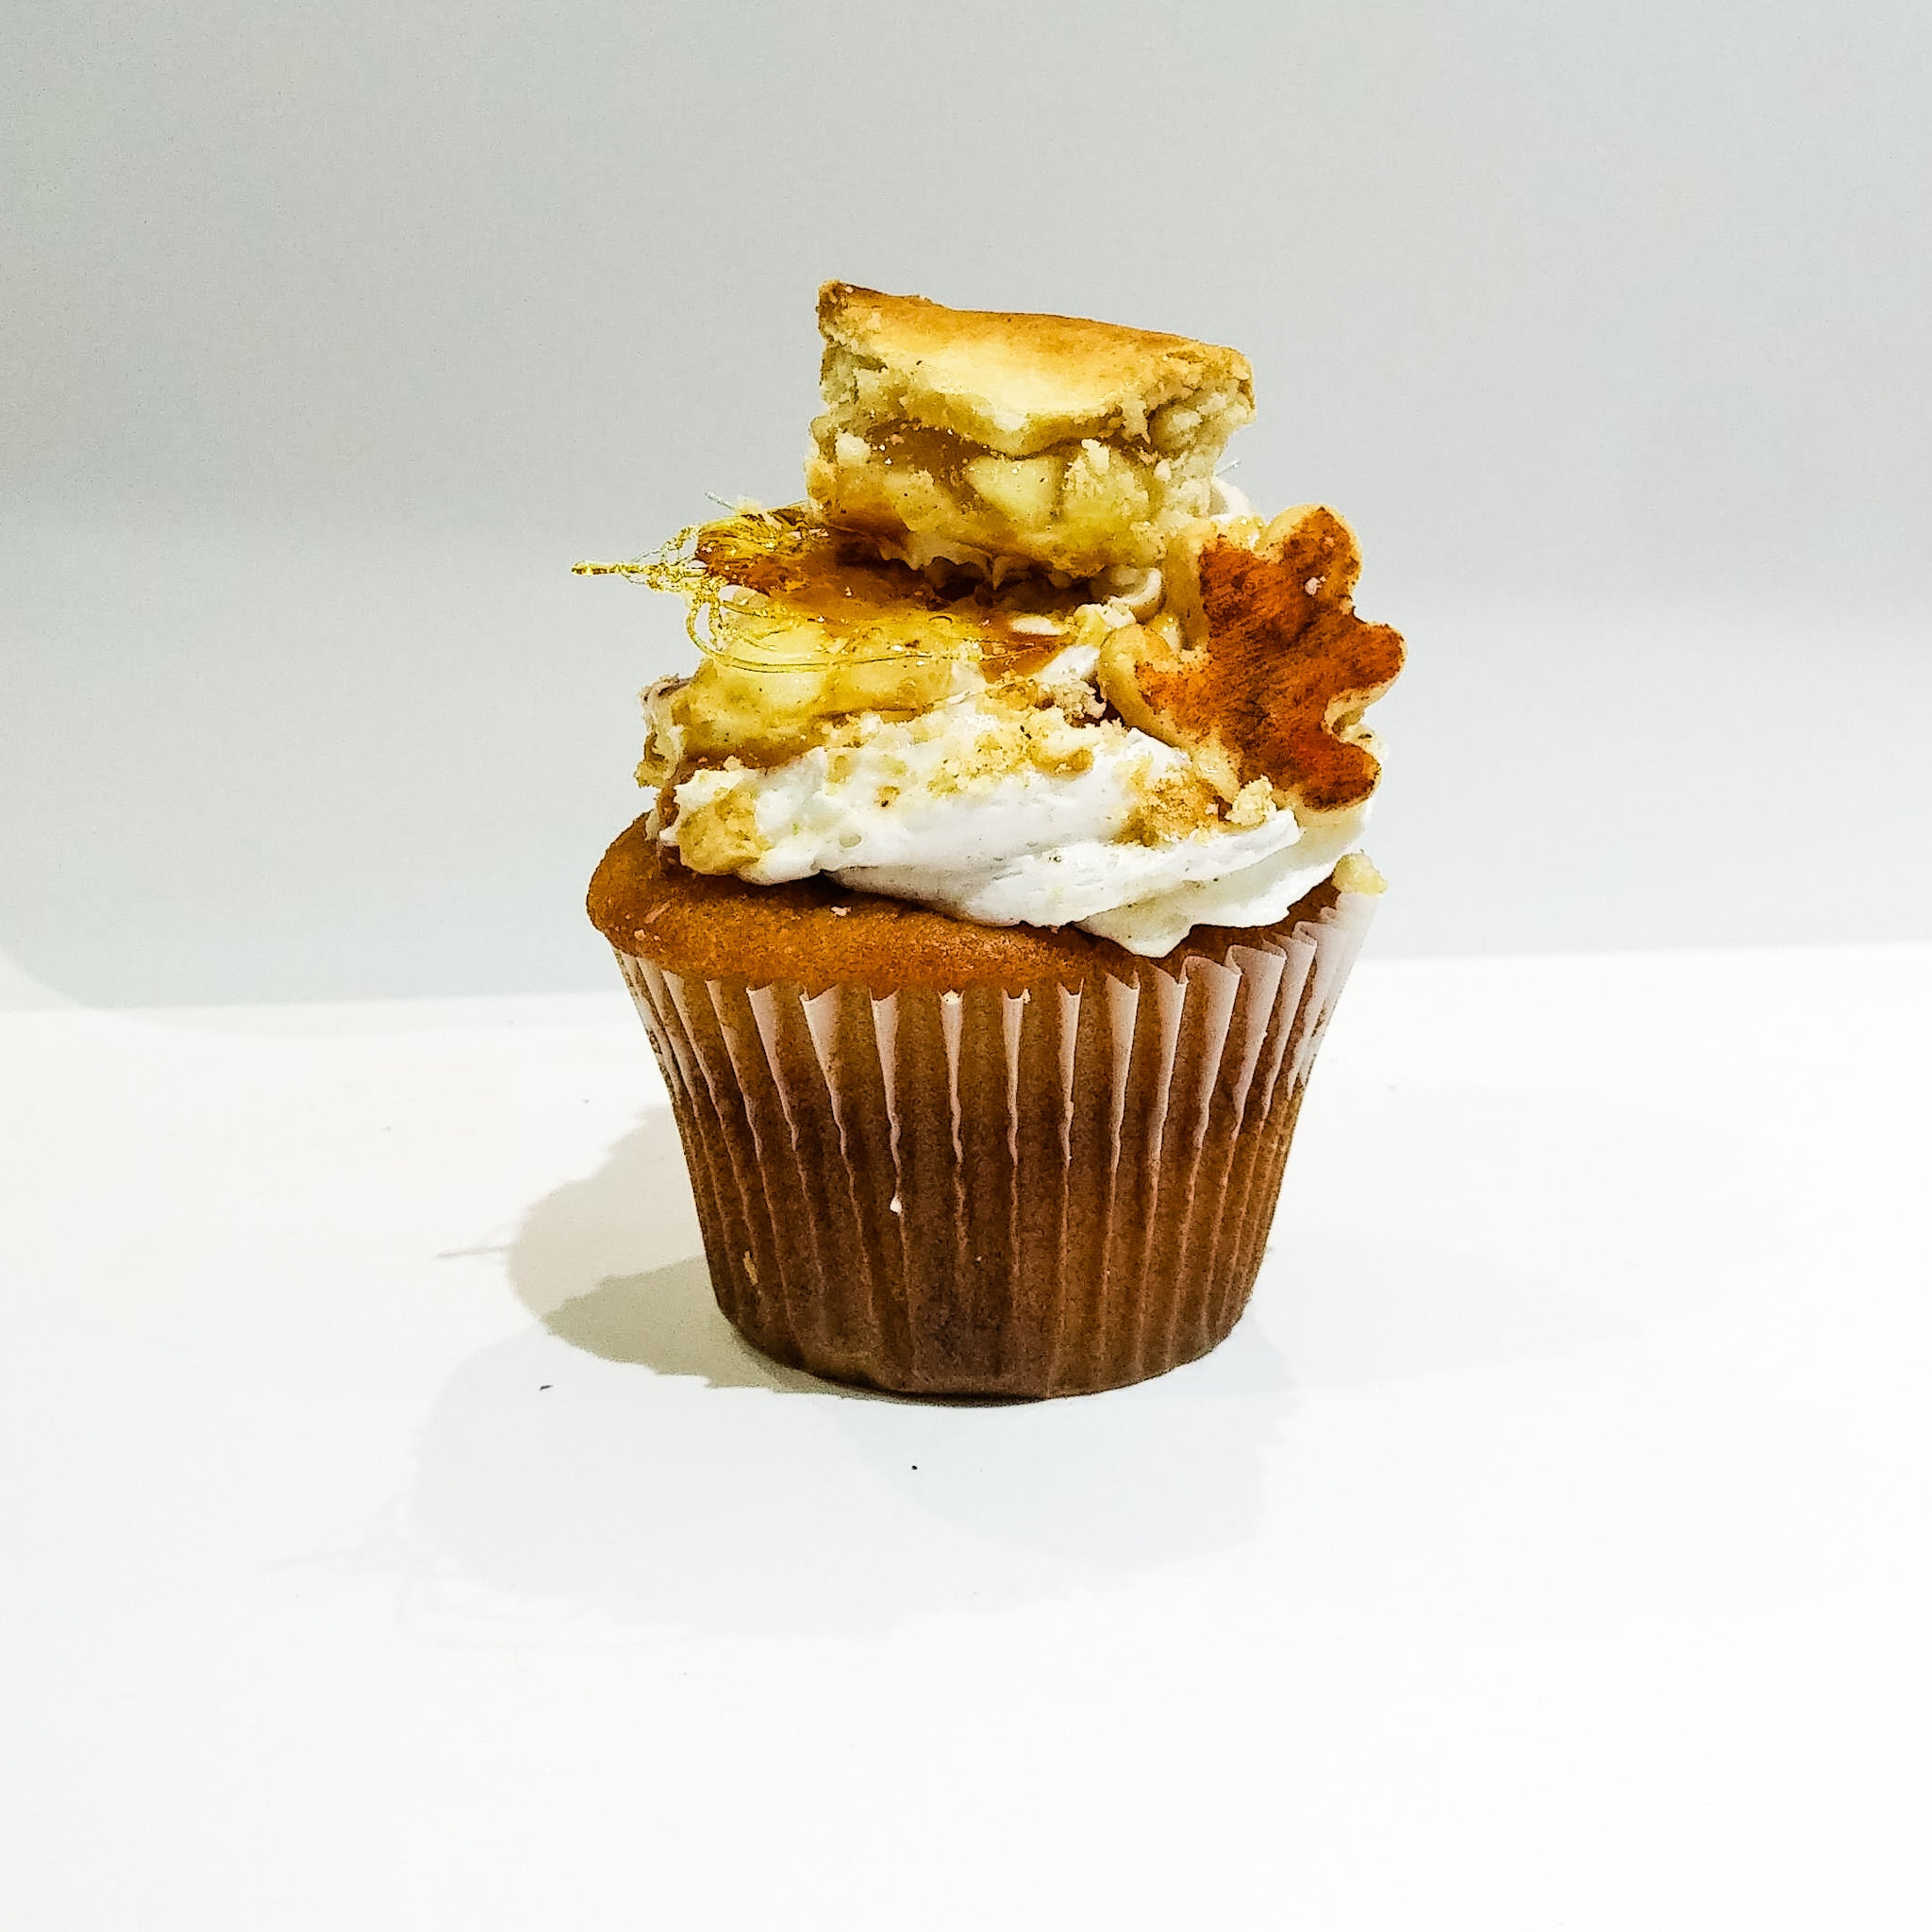 Apple Spice Cupcakes - Cakes, cookies & cupcakes,   - cupcakes, cakes, cookies, Georgie Porgie Cakes & Gifts - Georgie Porgie Cakes & Gifts